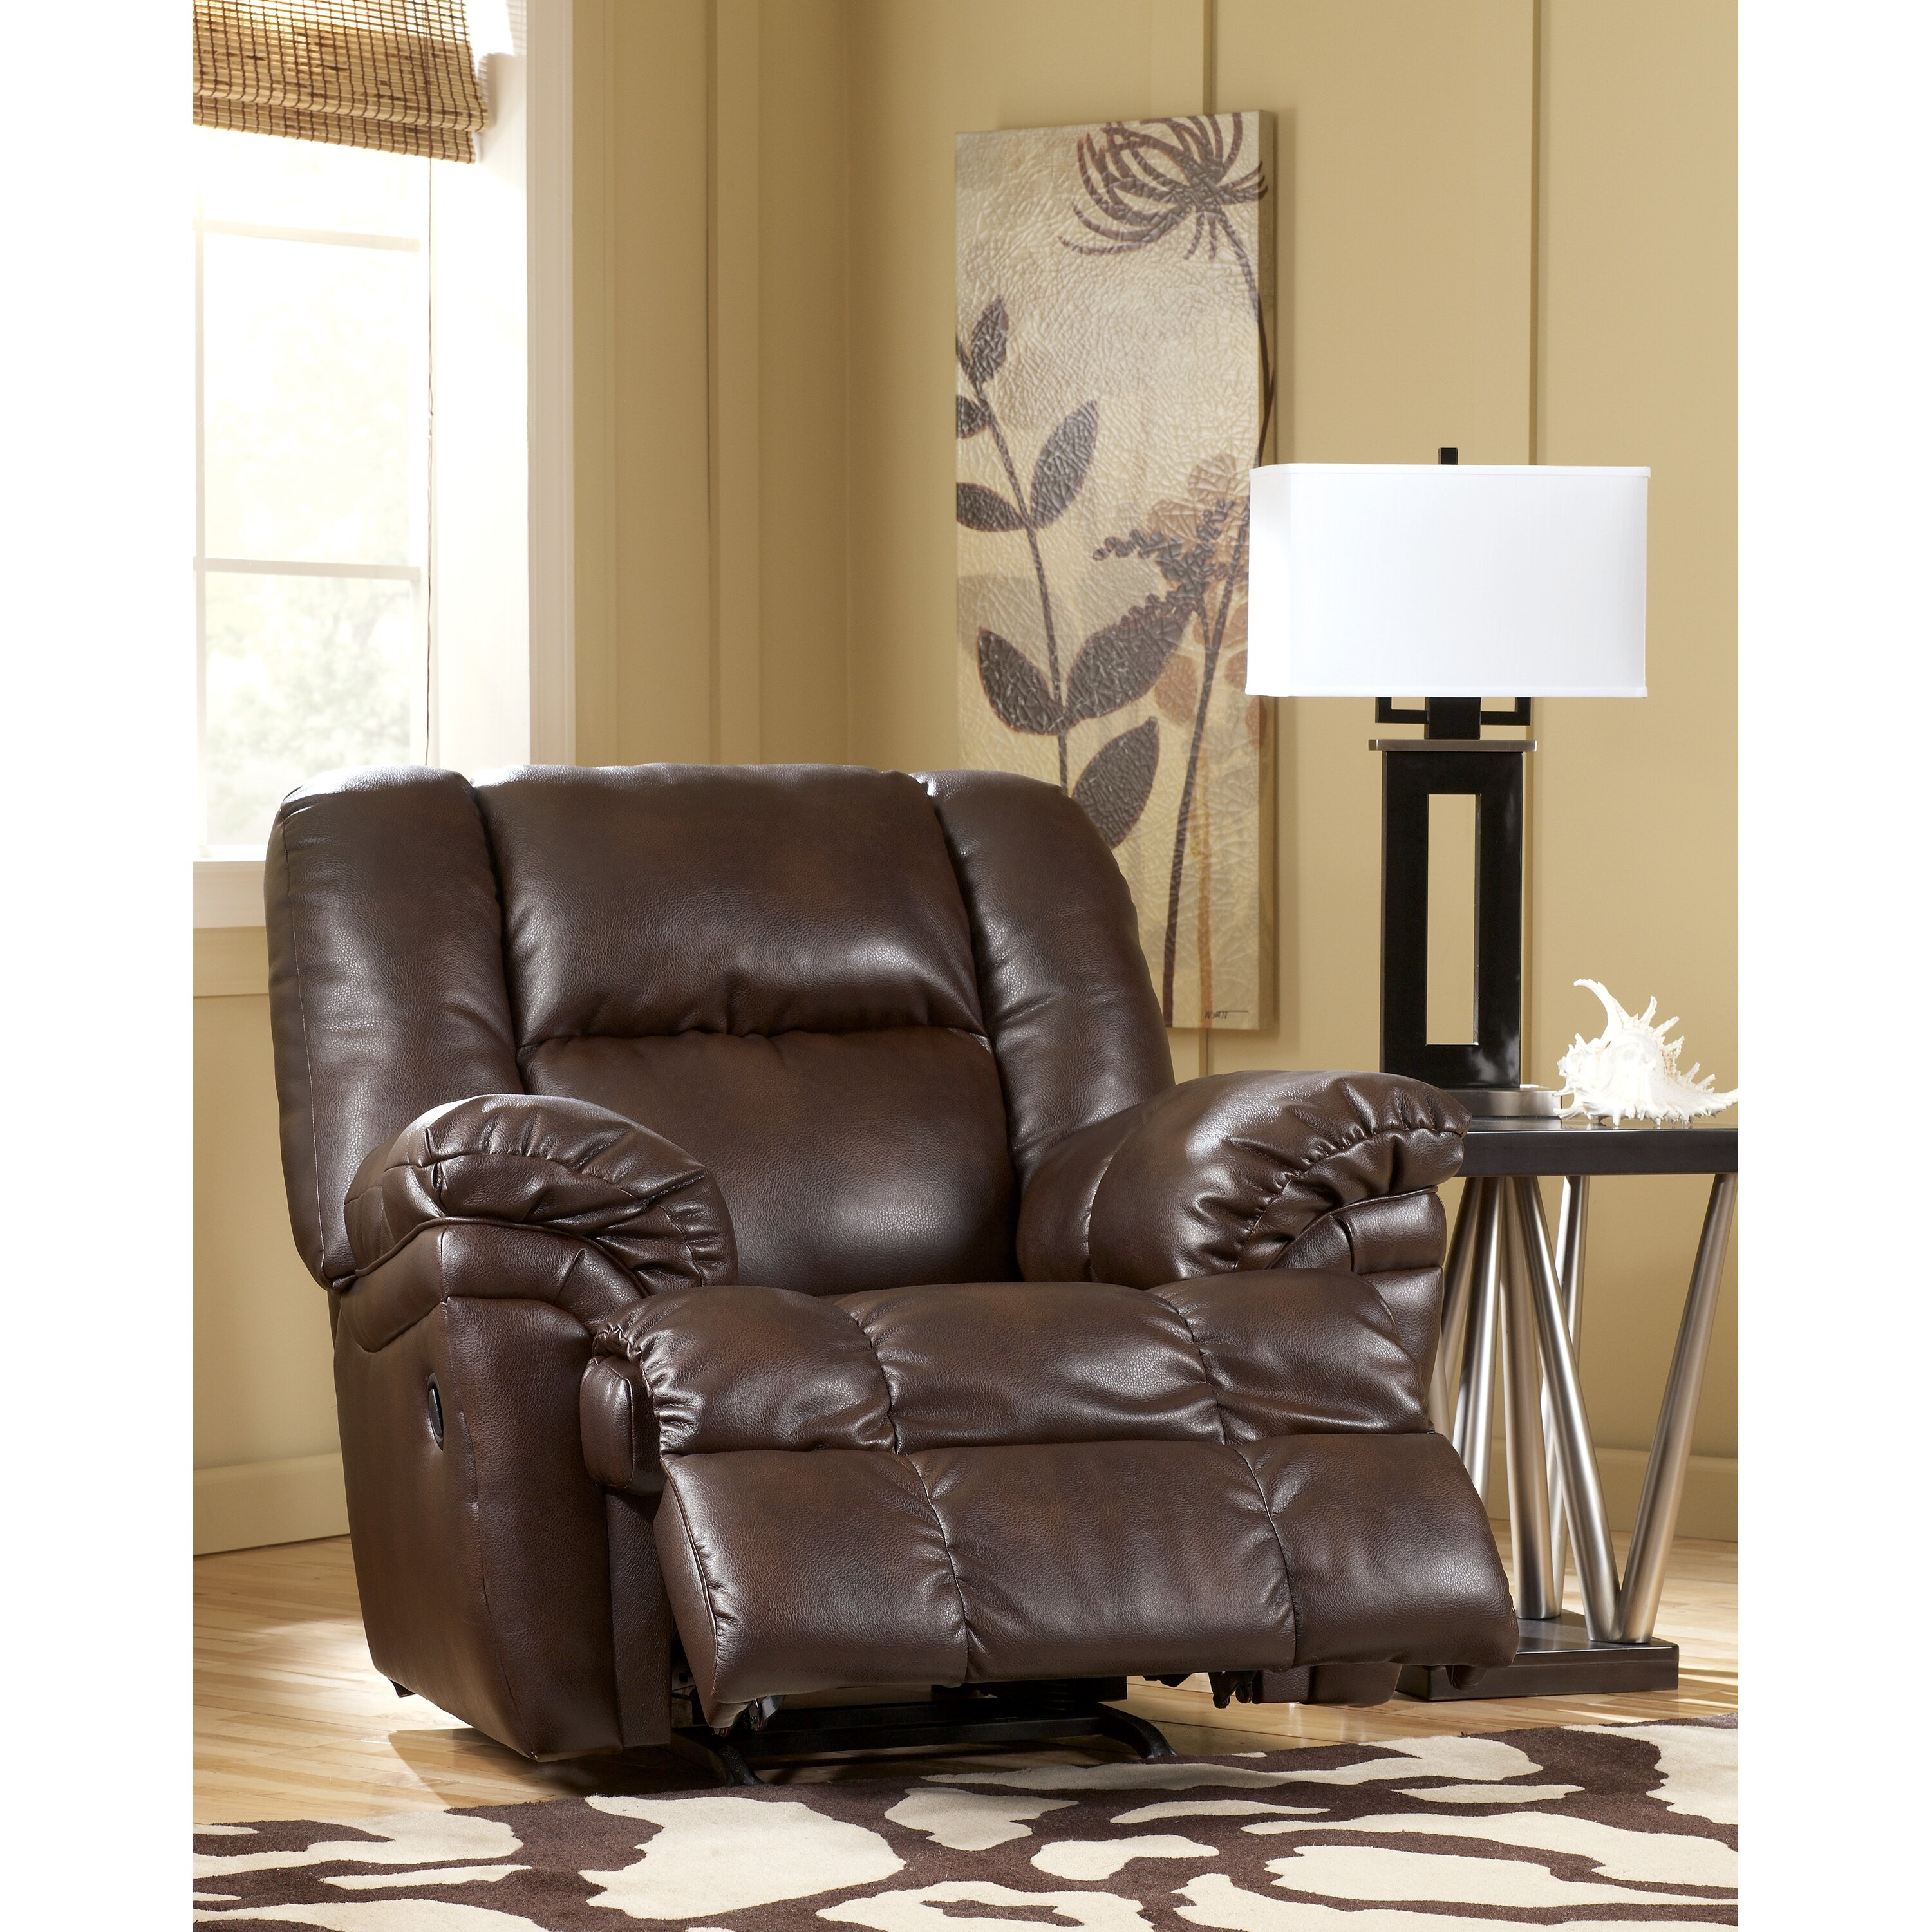 Signature design by ashley holt chaise recliner wayfair for Ashley reclining chaise